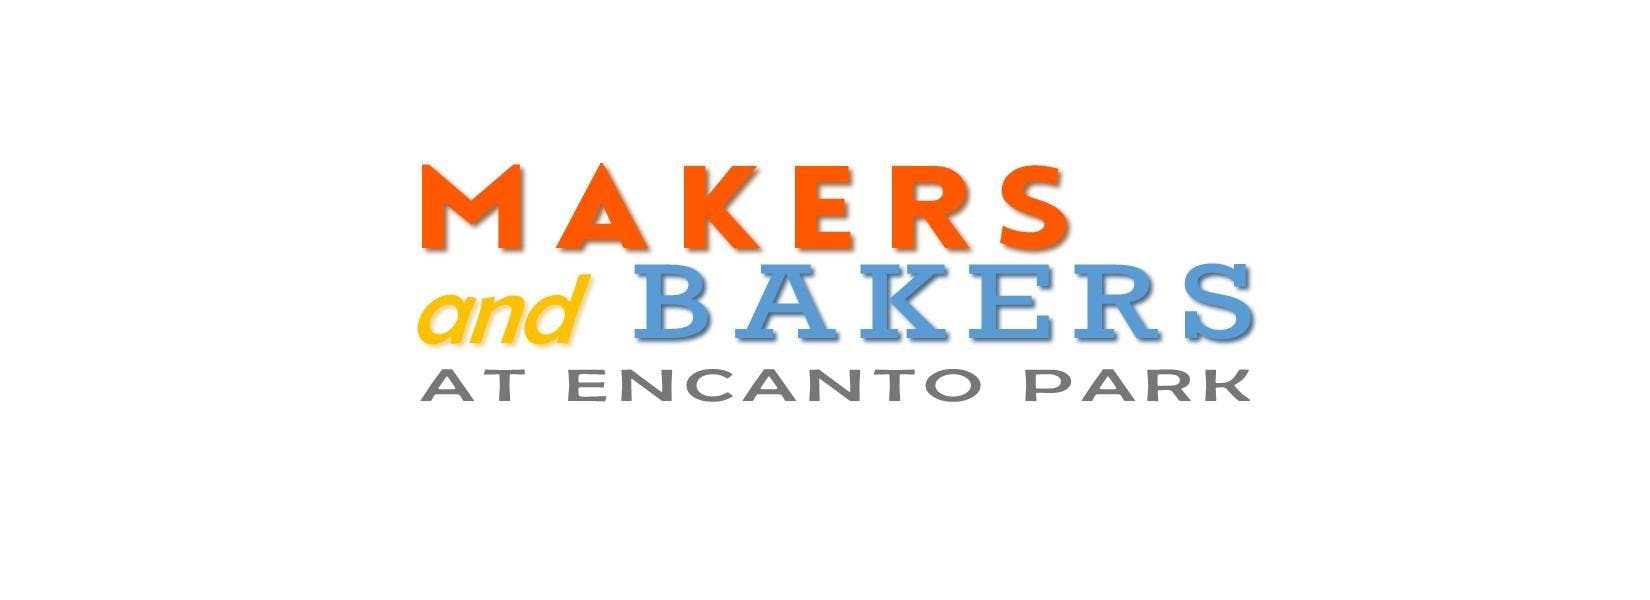 Makers and Bakers at Encanto Park - An Art Market and Bake-Off Competition